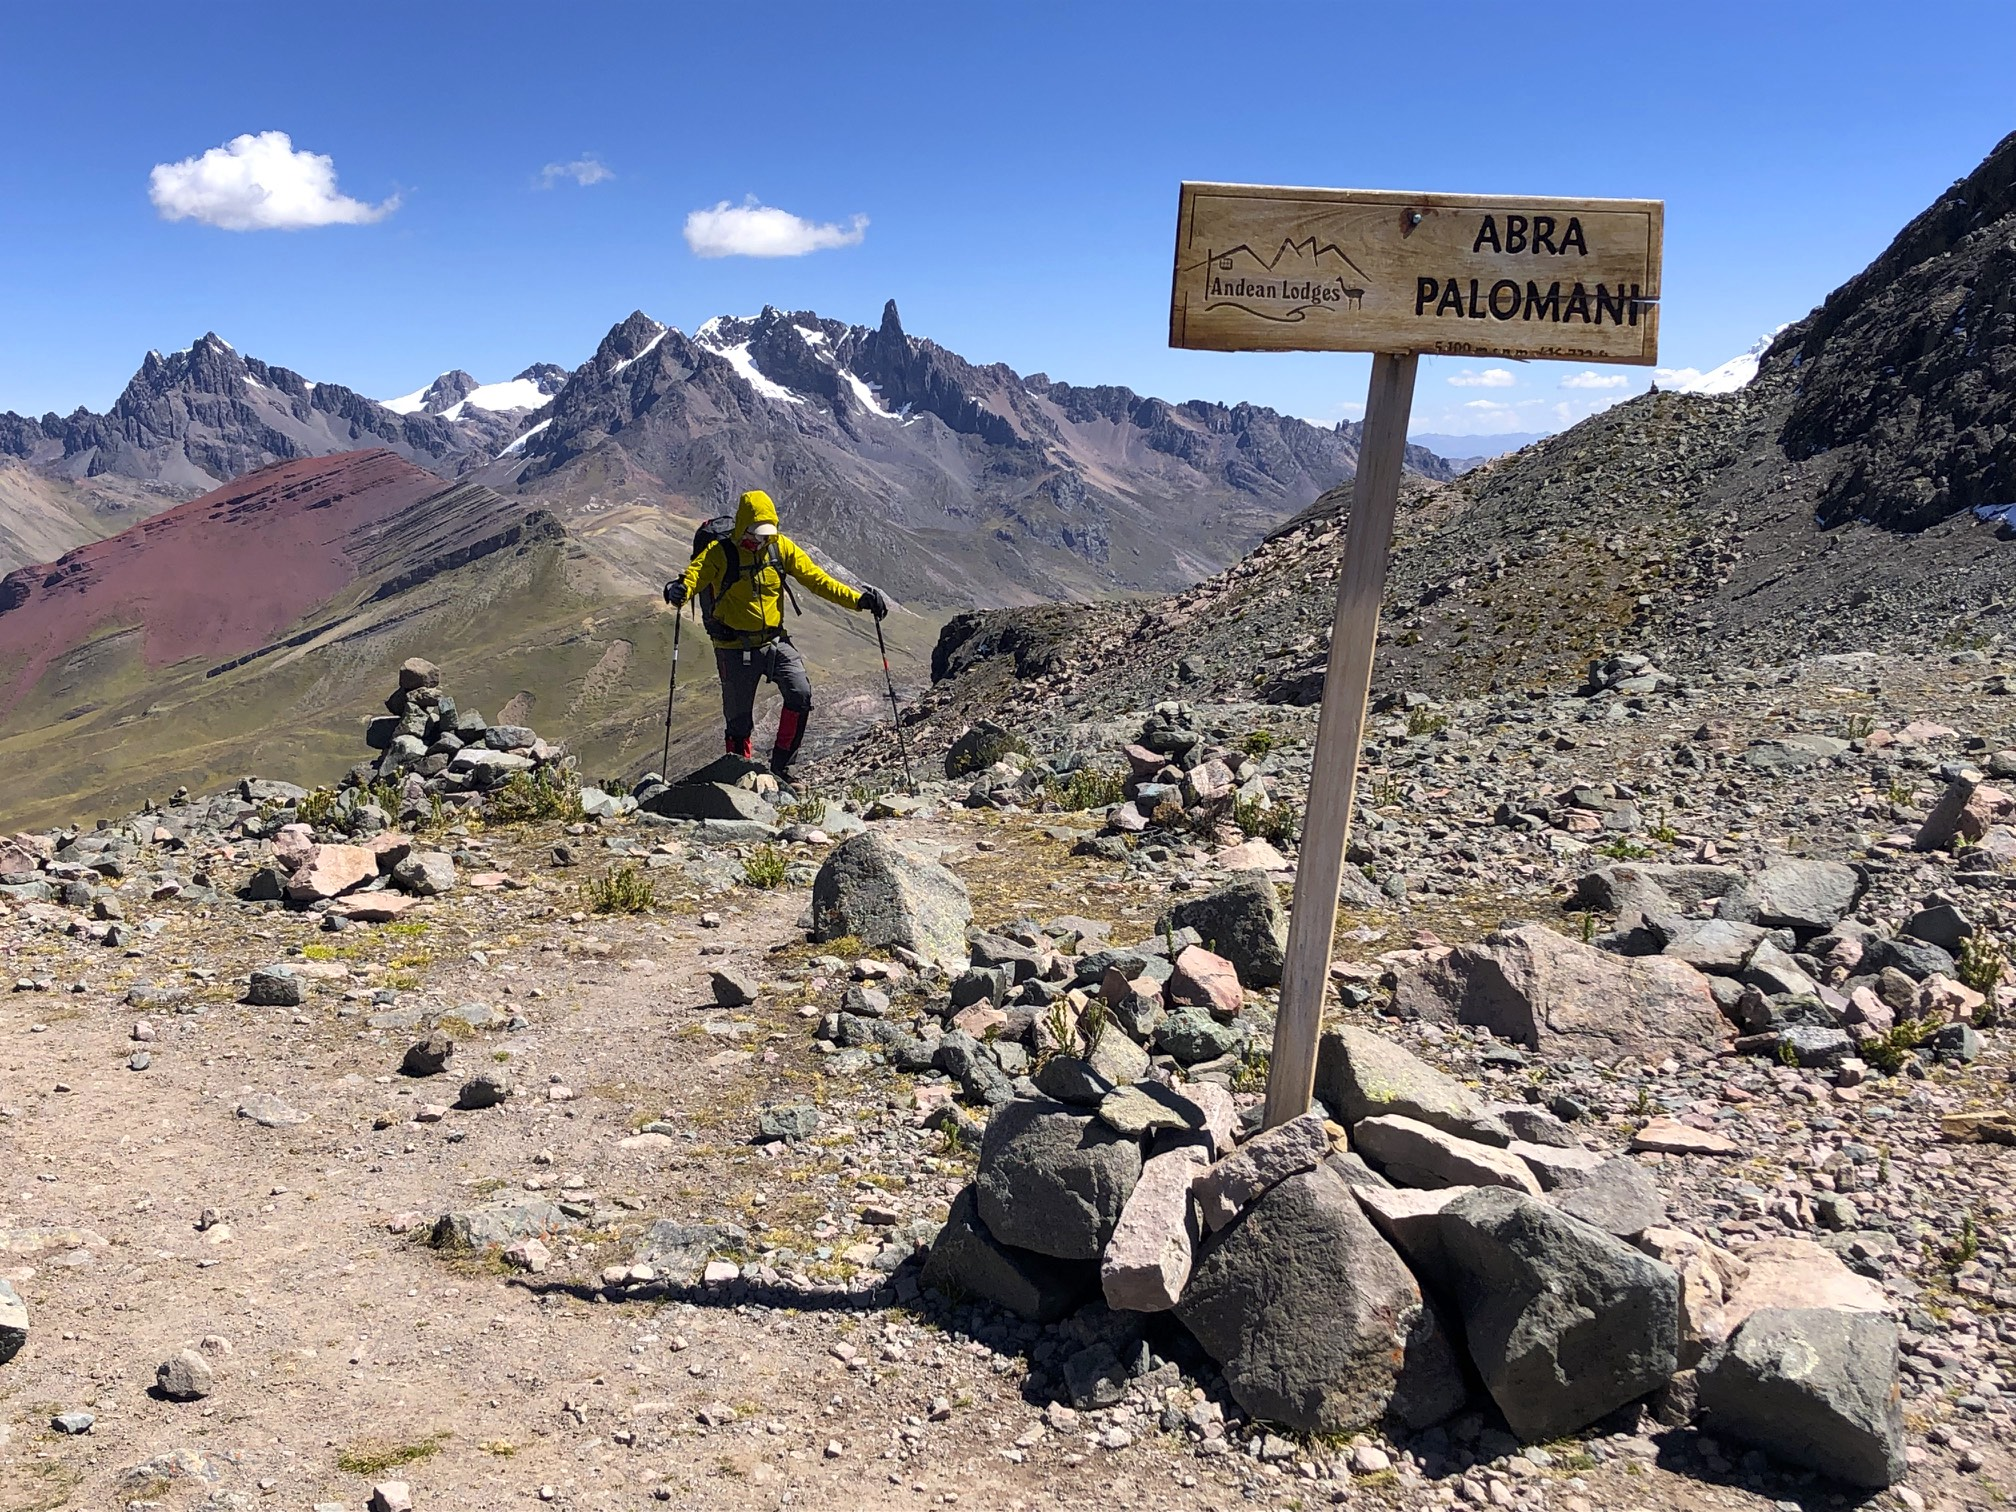 Finally, the Palomani Pass - our first time at 5,000m!